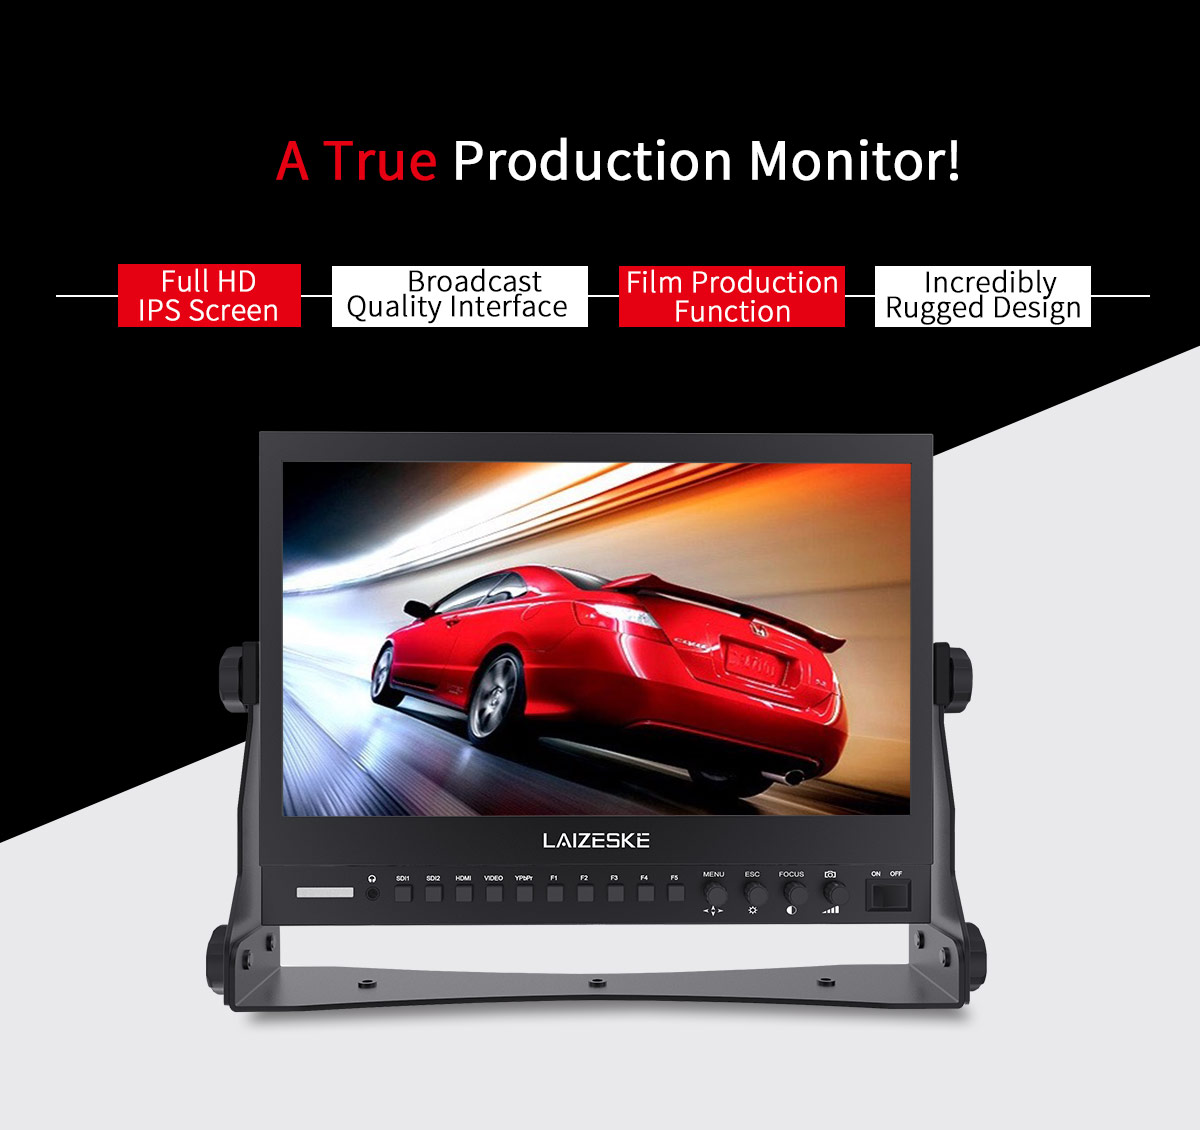 fhd-production-monitor